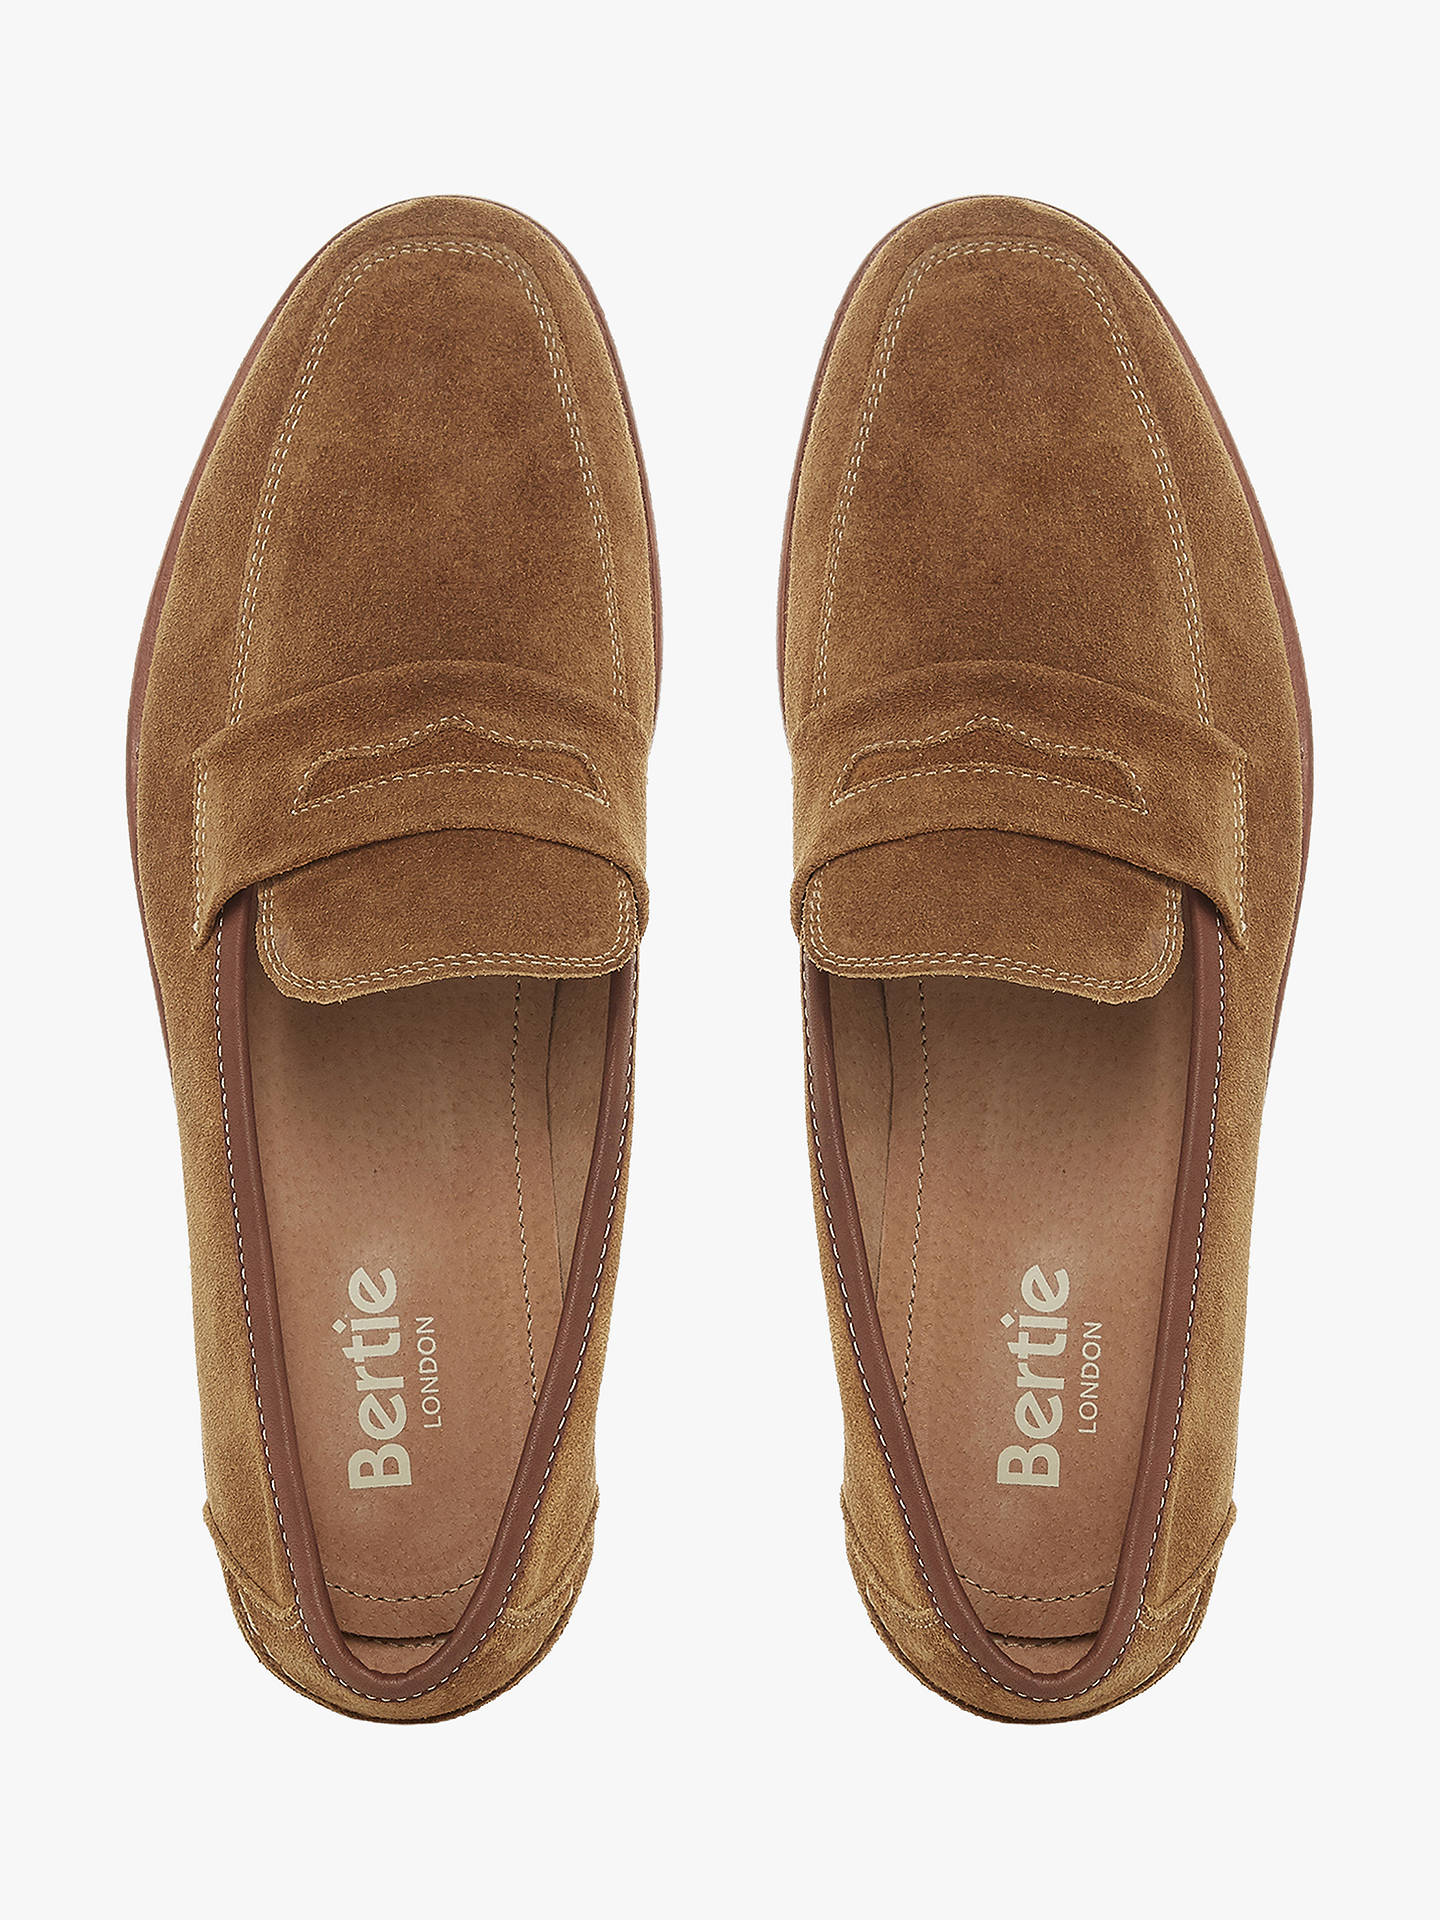 e3abf0e099a Bertie Soho Suede Penny Loafer at John Lewis   Partners